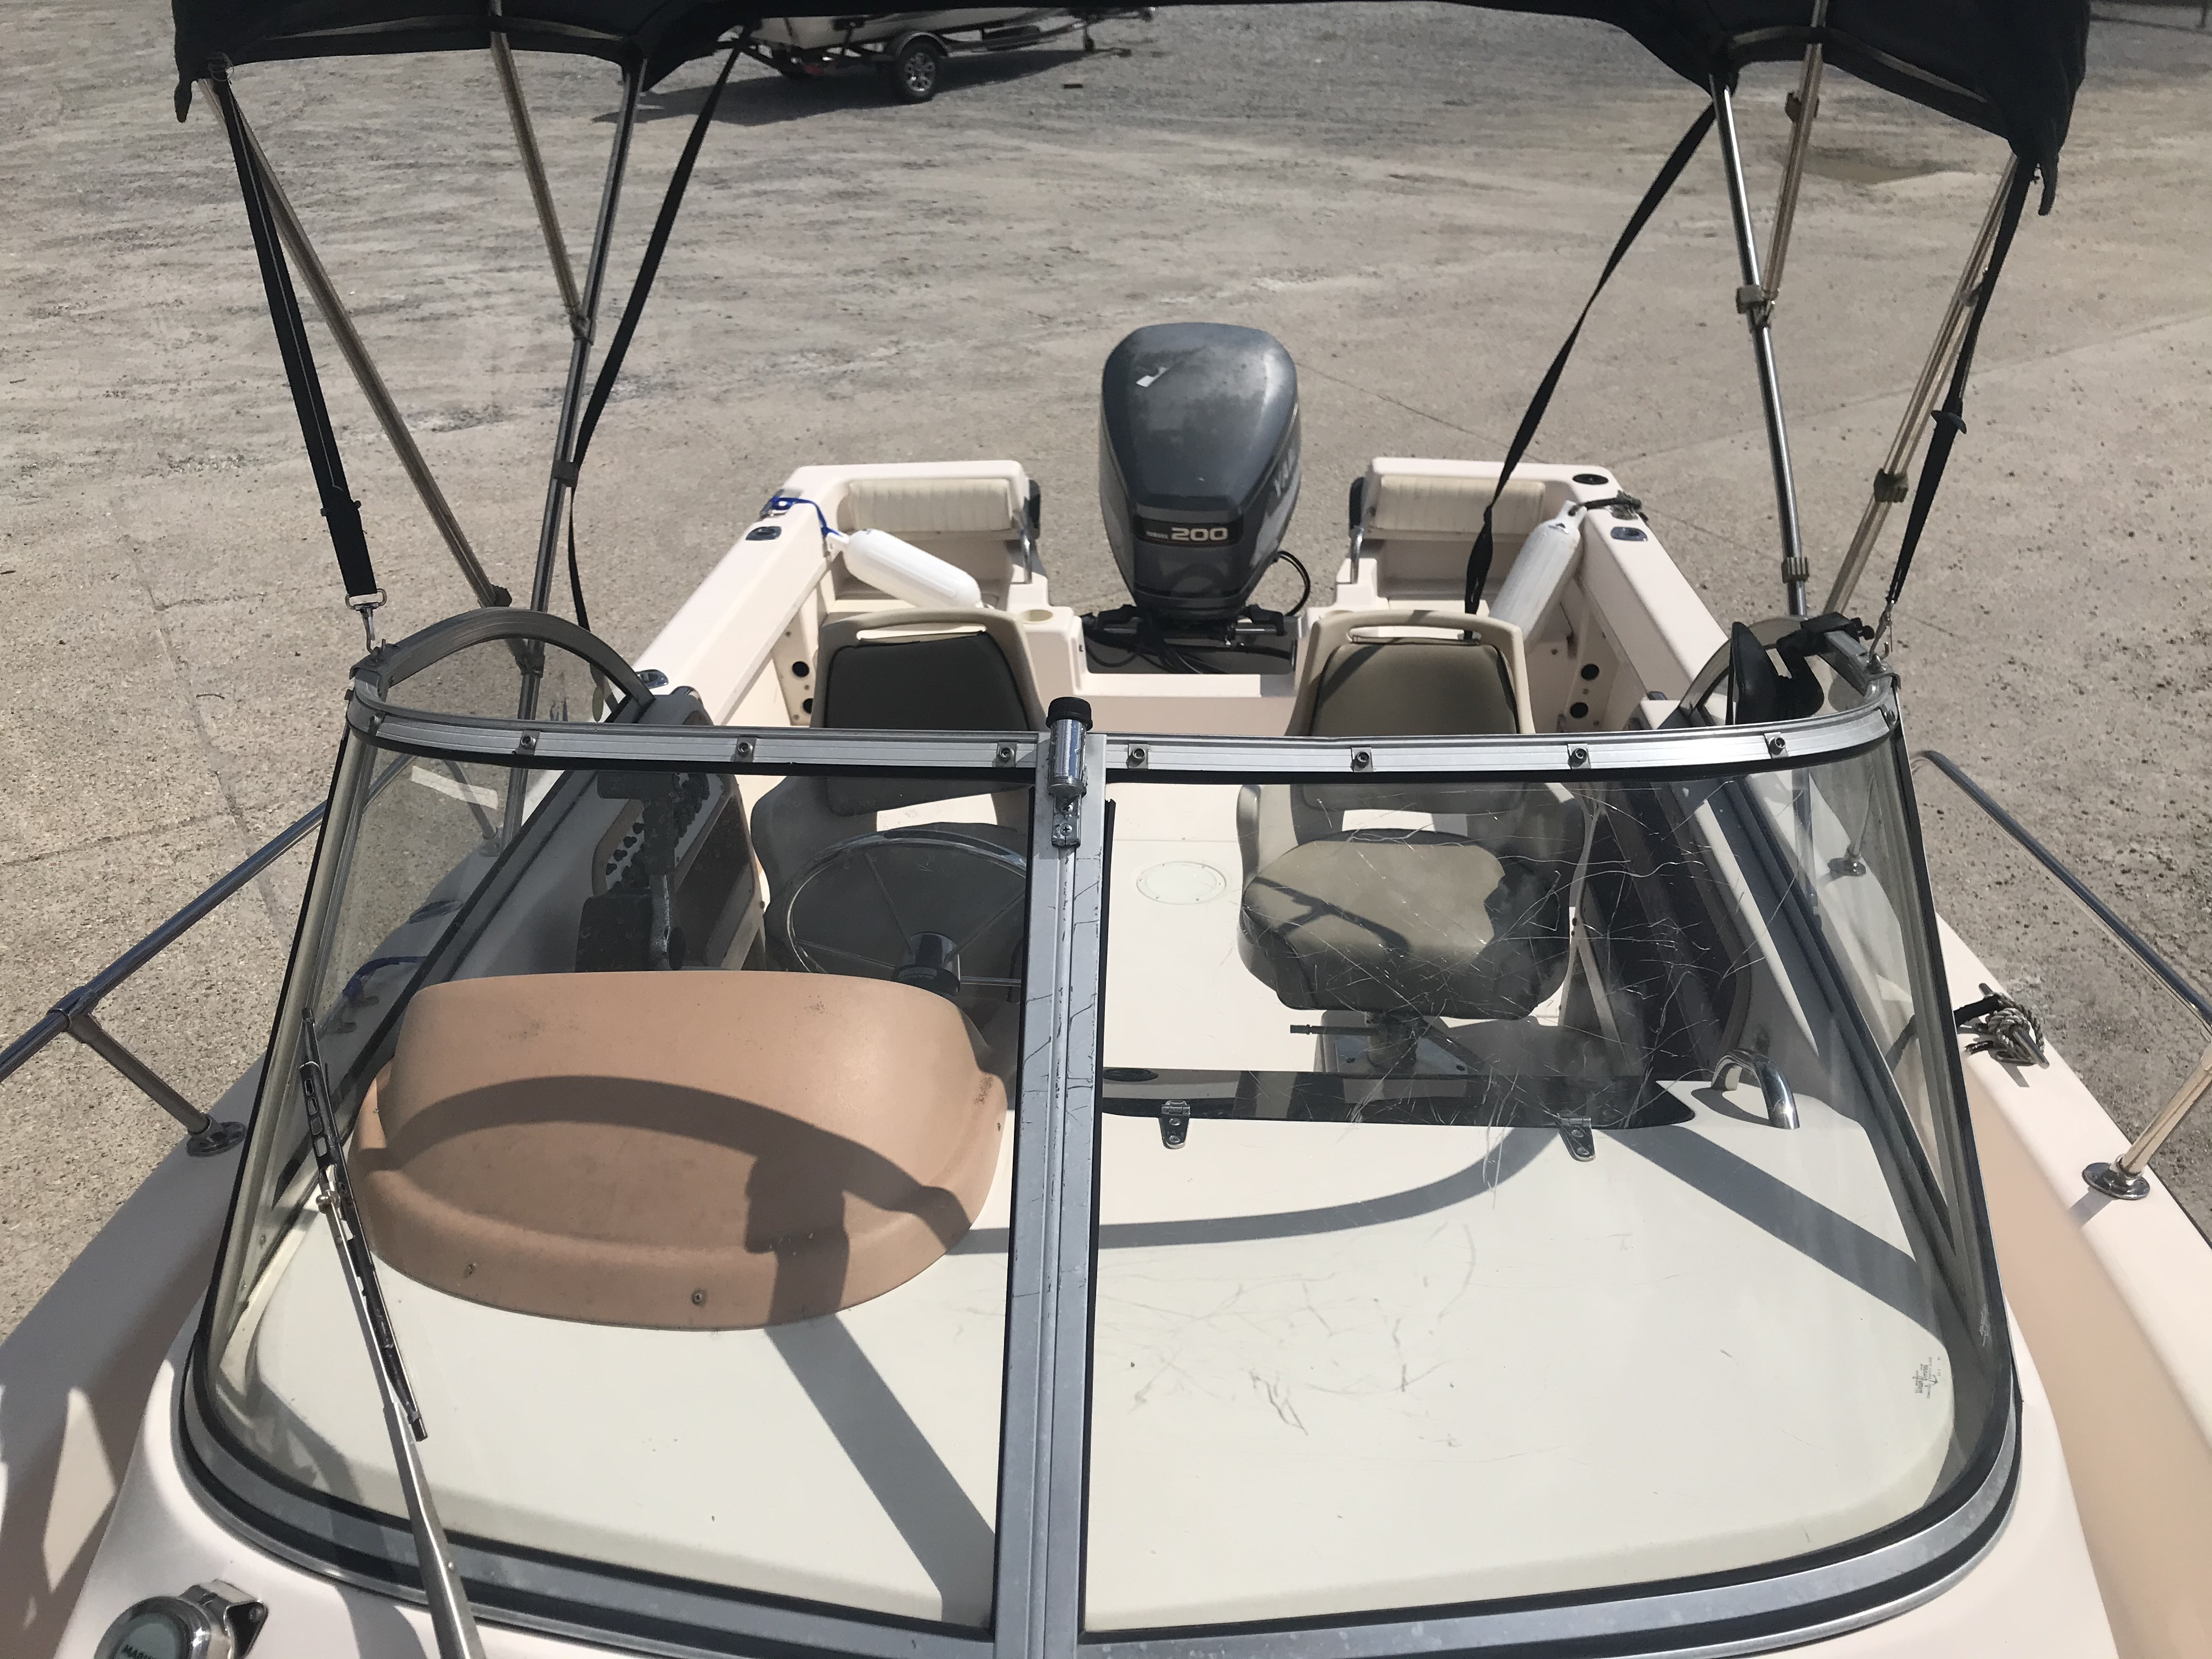 1998 Grady-White boat for sale, model of the boat is Adventure 208 & Image # 2 of 15